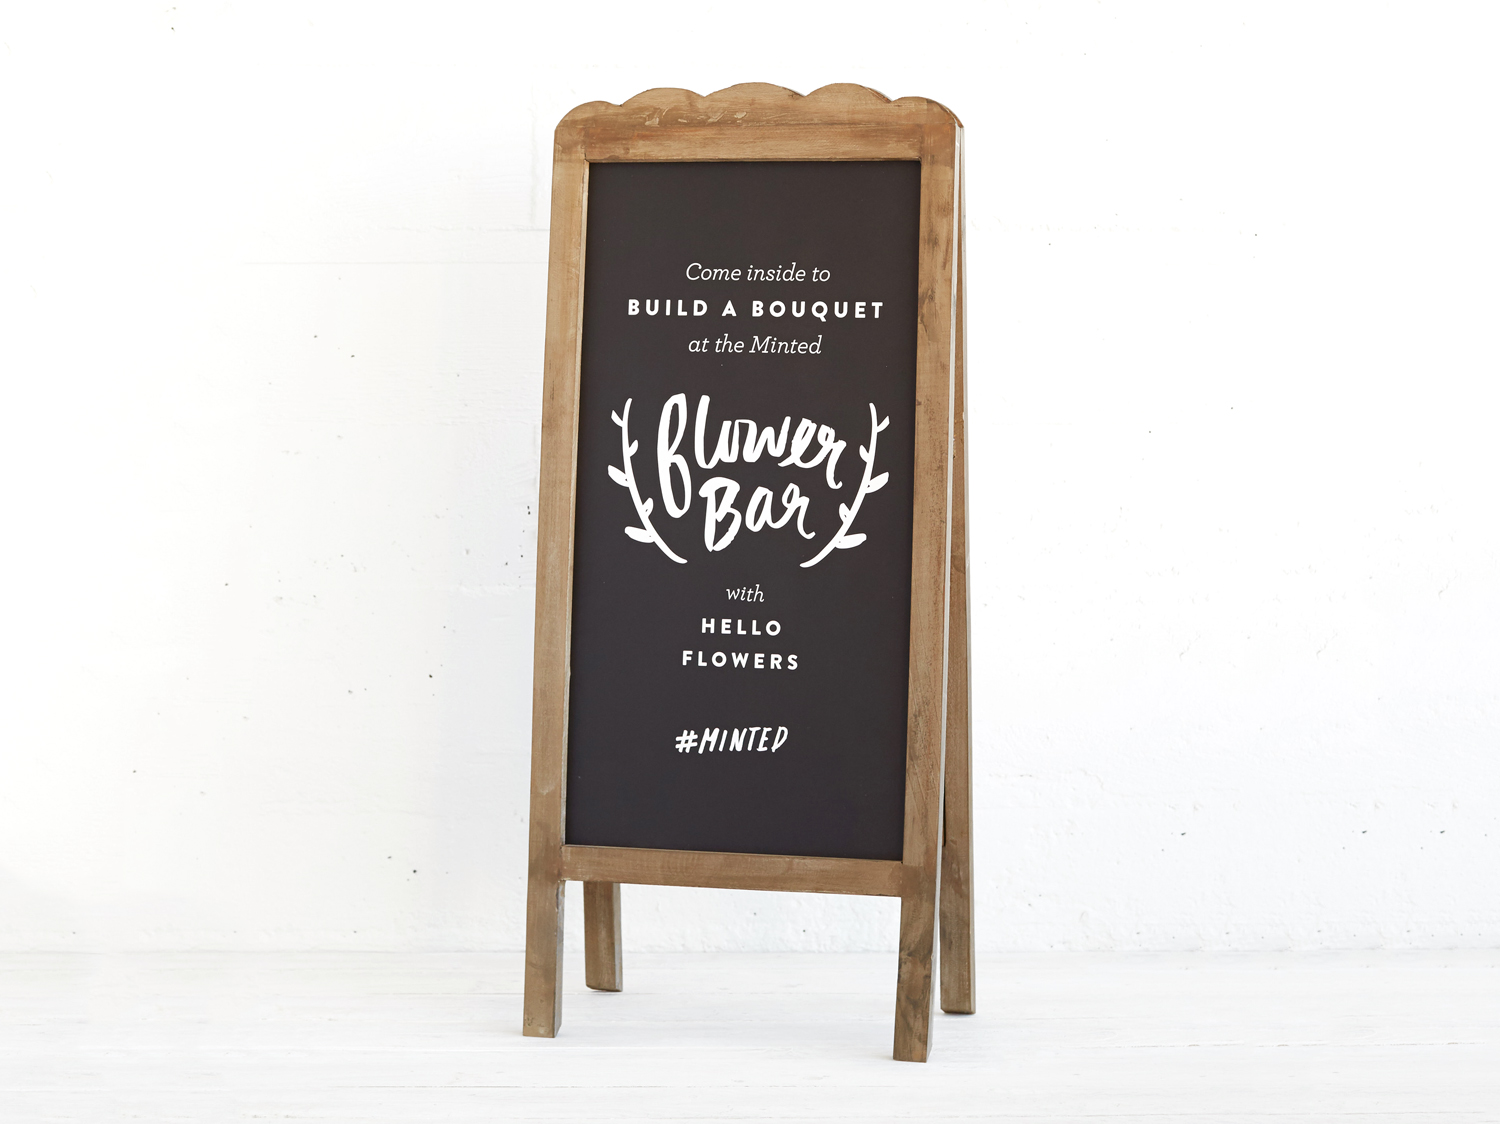 Hand-lettering and design